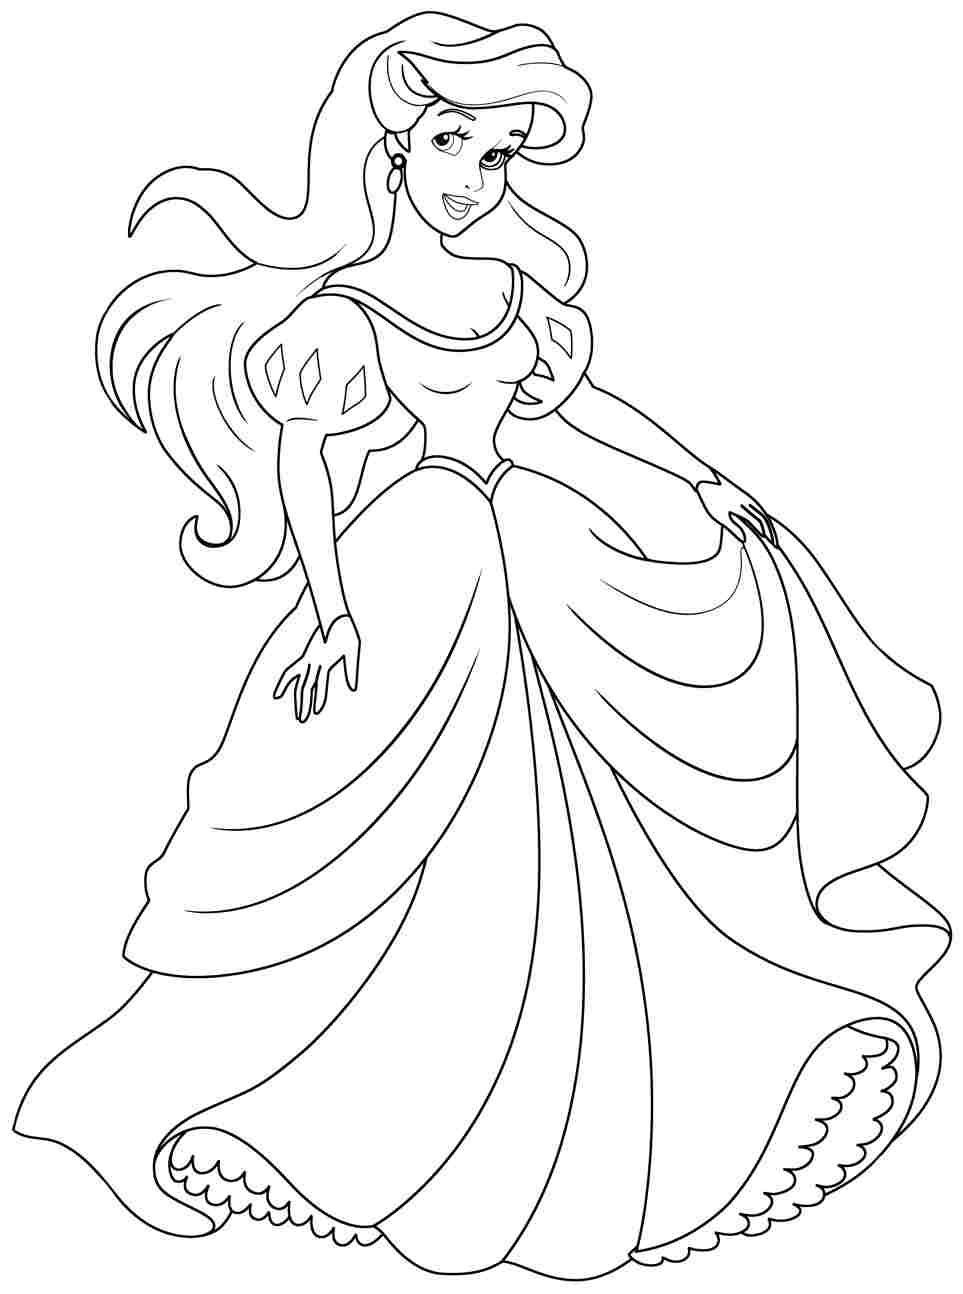 ariel coloring pages printable - photo#5